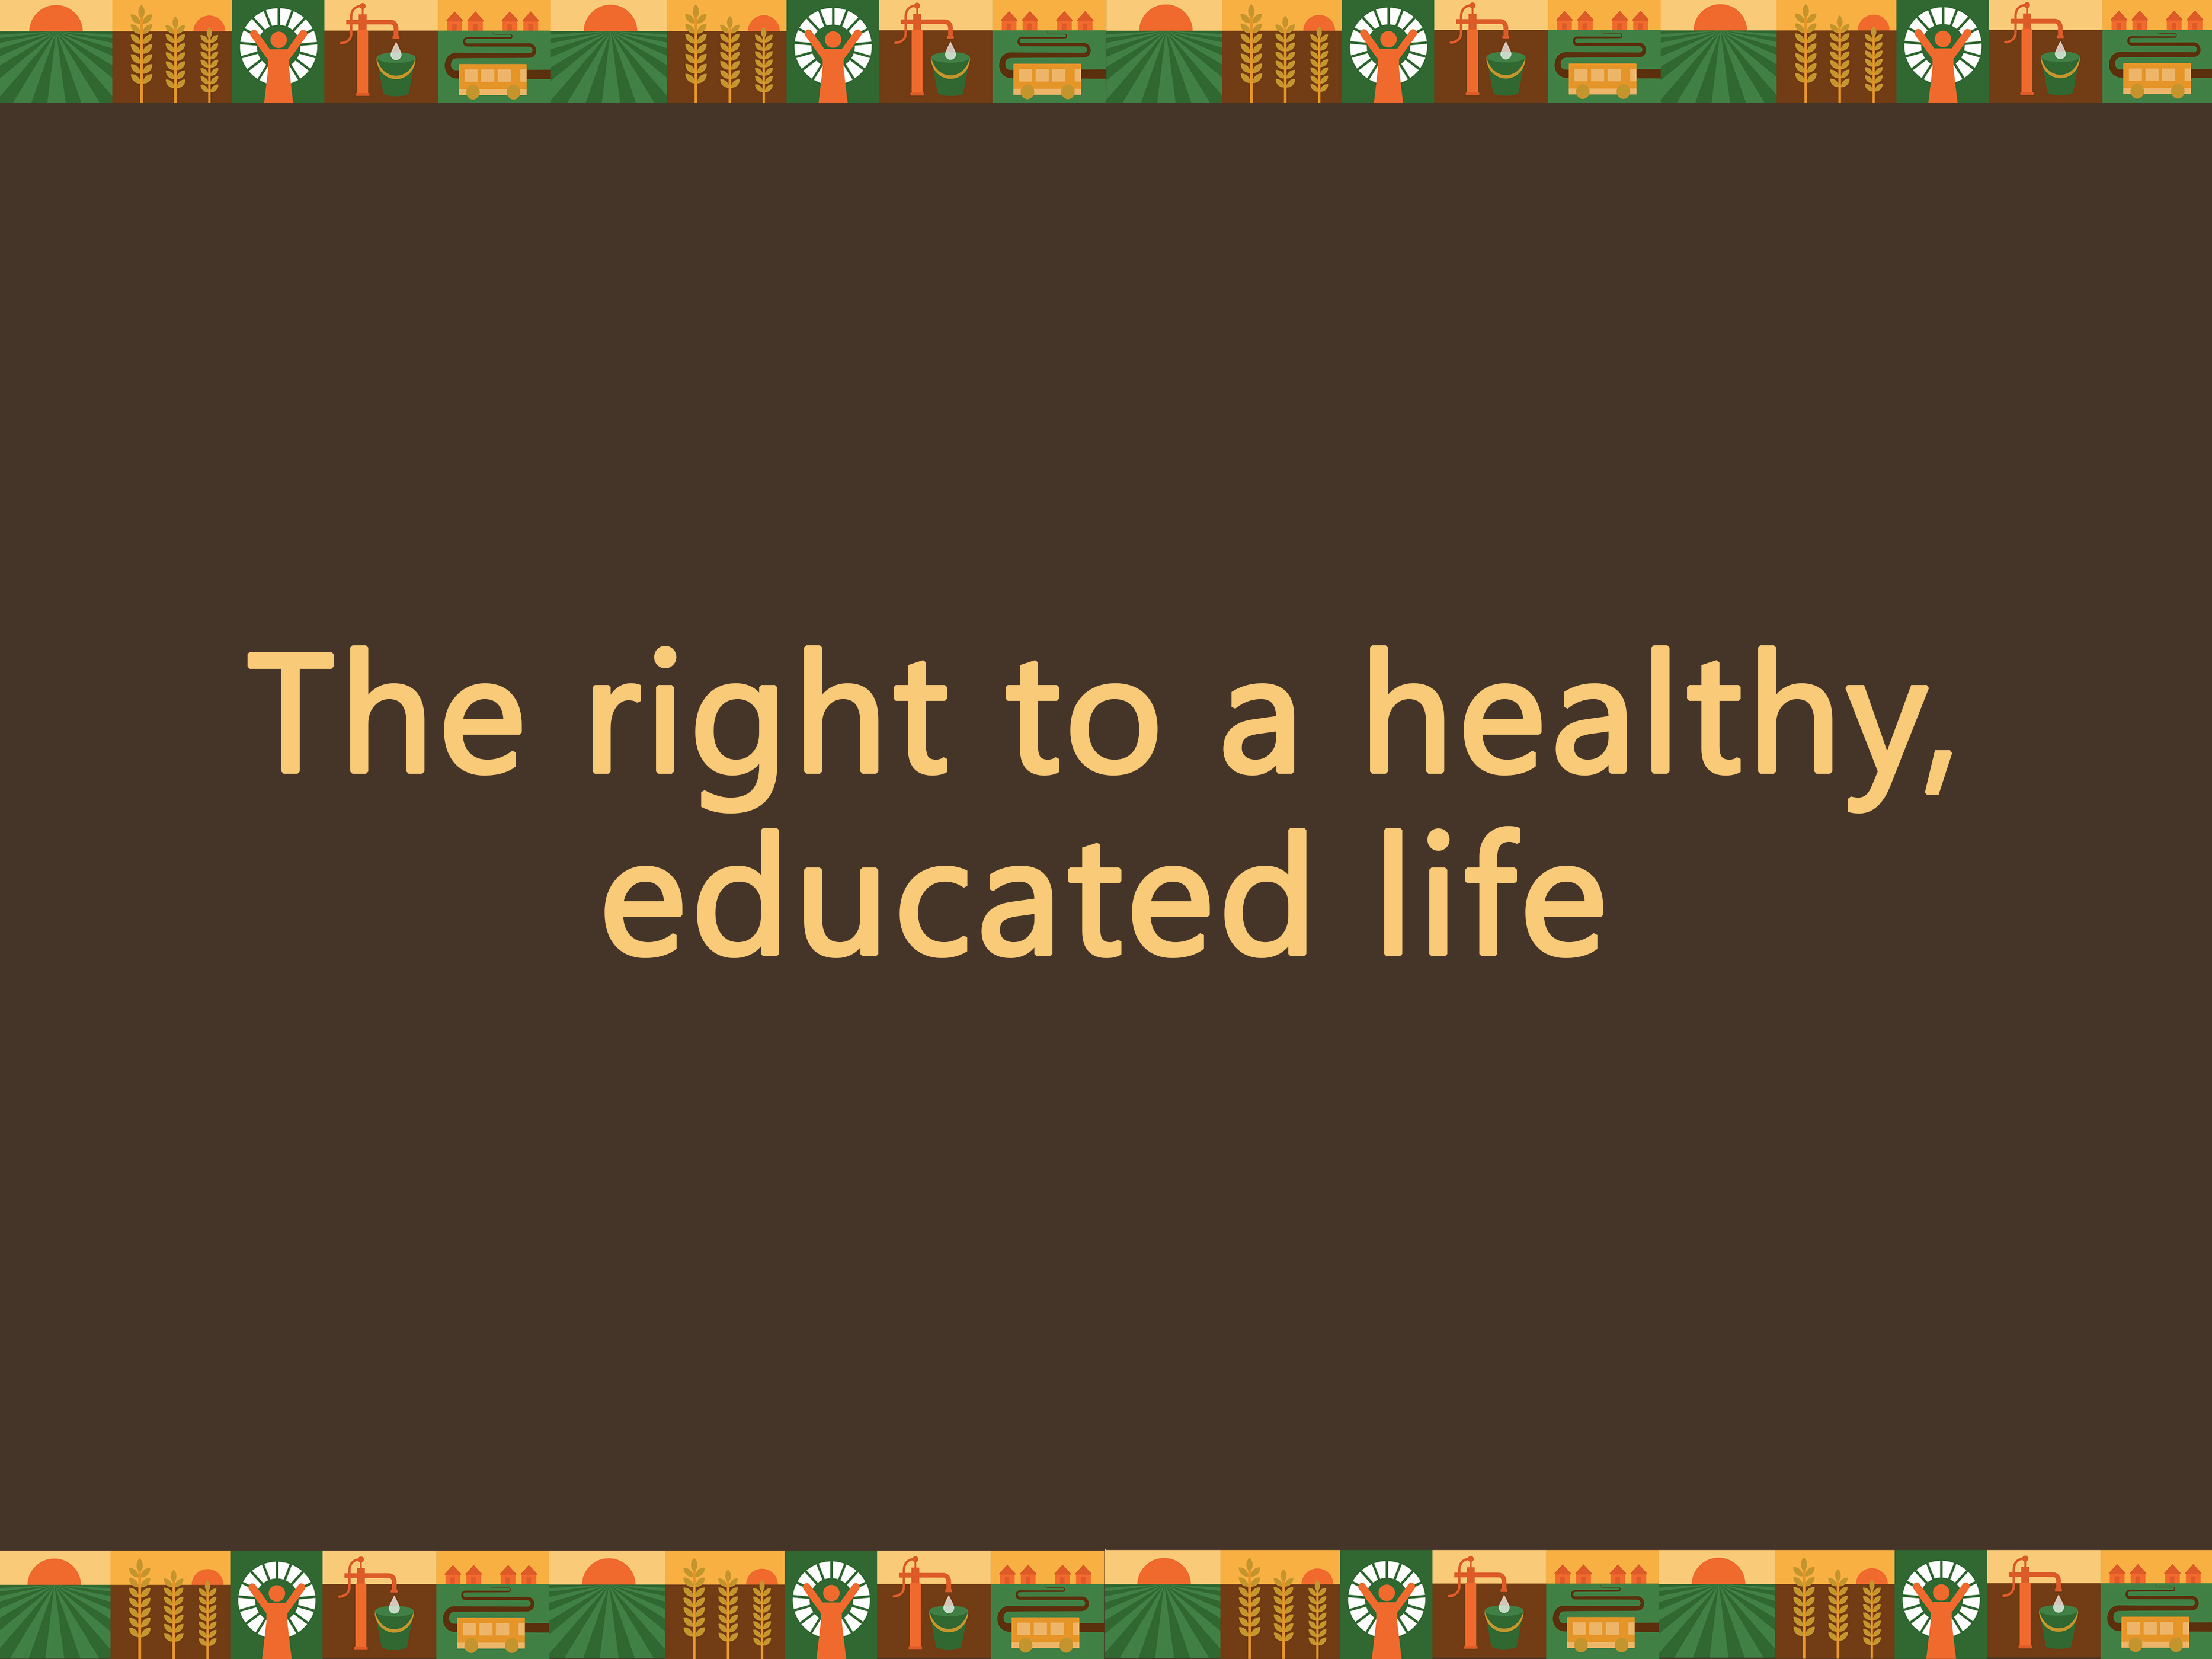 The right to a healthy, educated life